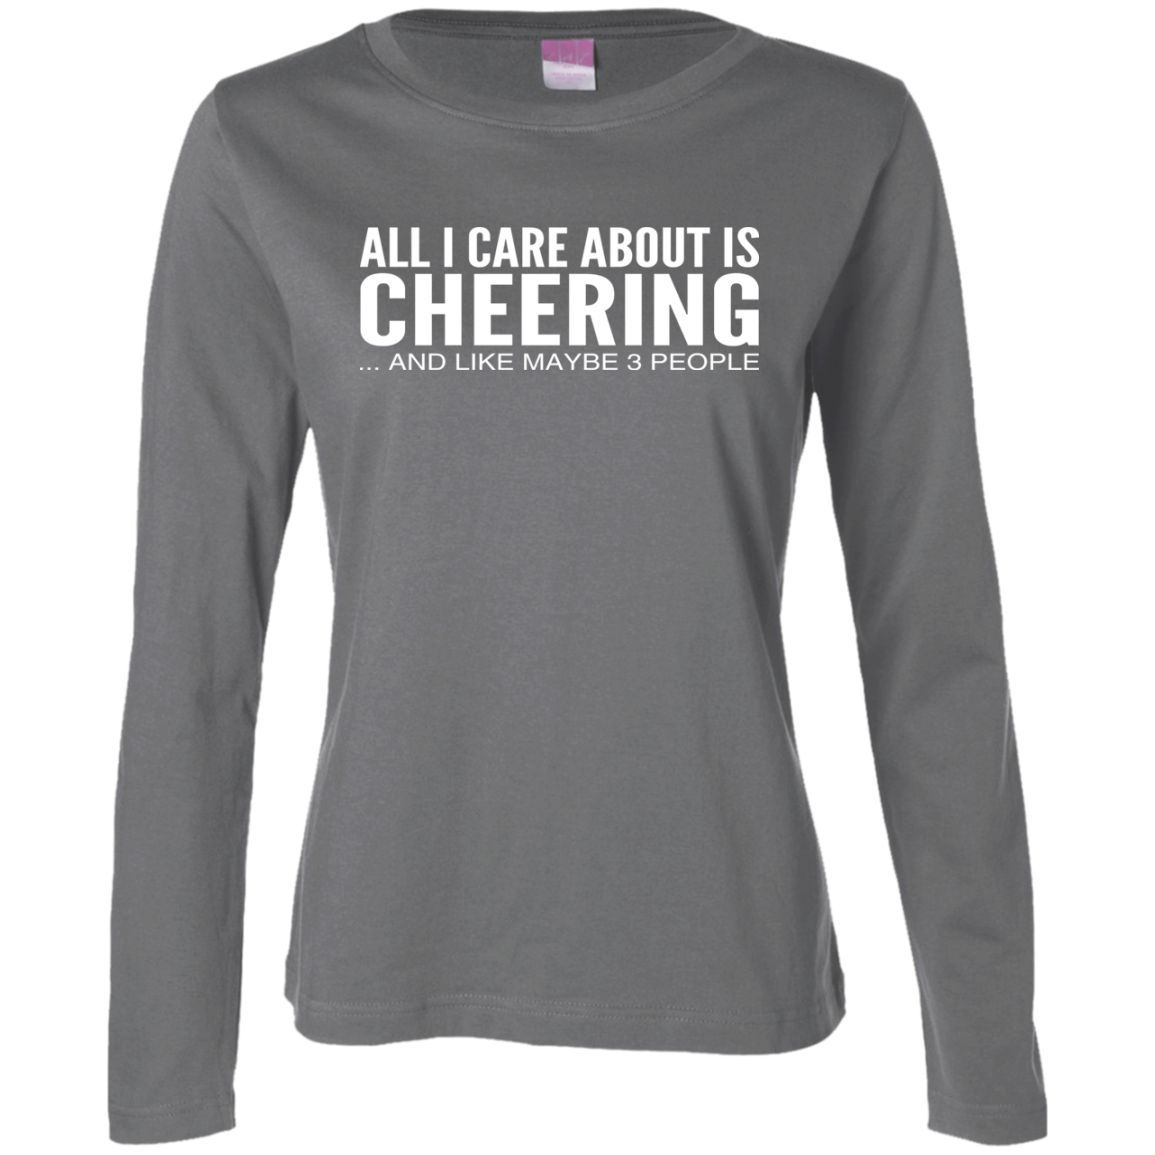 All I Care About Is Cheering And Like Maybe 3 People Ladies Long Sleeve Tees